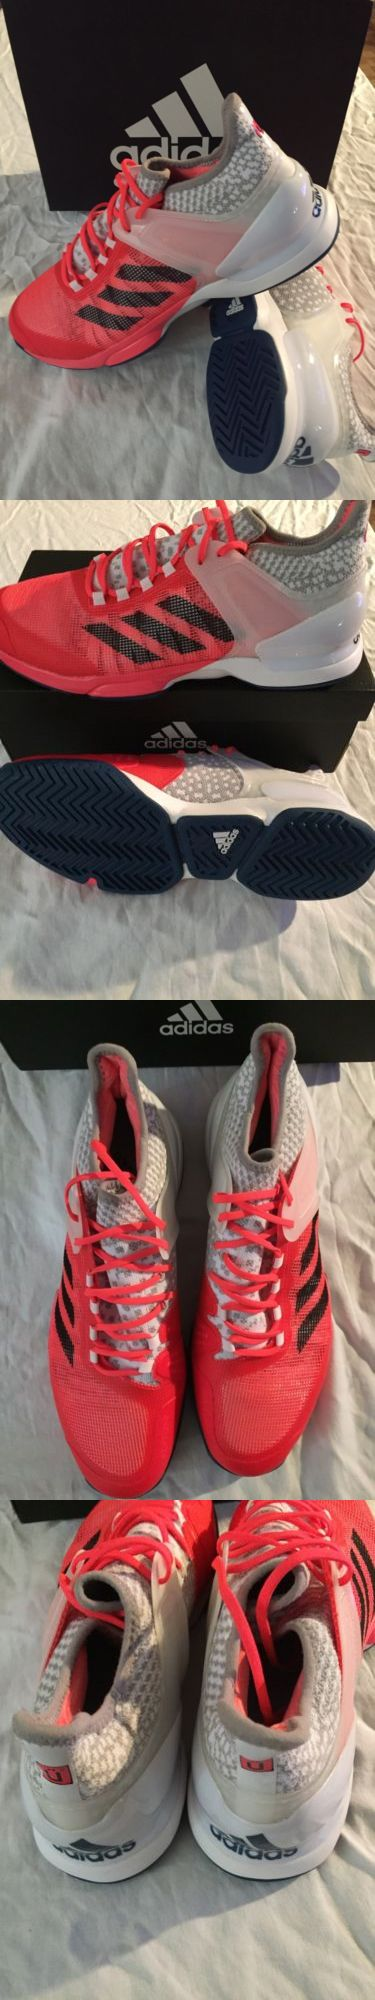 Shoes 62230: New Mens Adidas Adizero Ubersonic 2 Tennis Shoes Size 12 #Aq6050 -> BUY IT NOW ONLY: $65 on eBay!